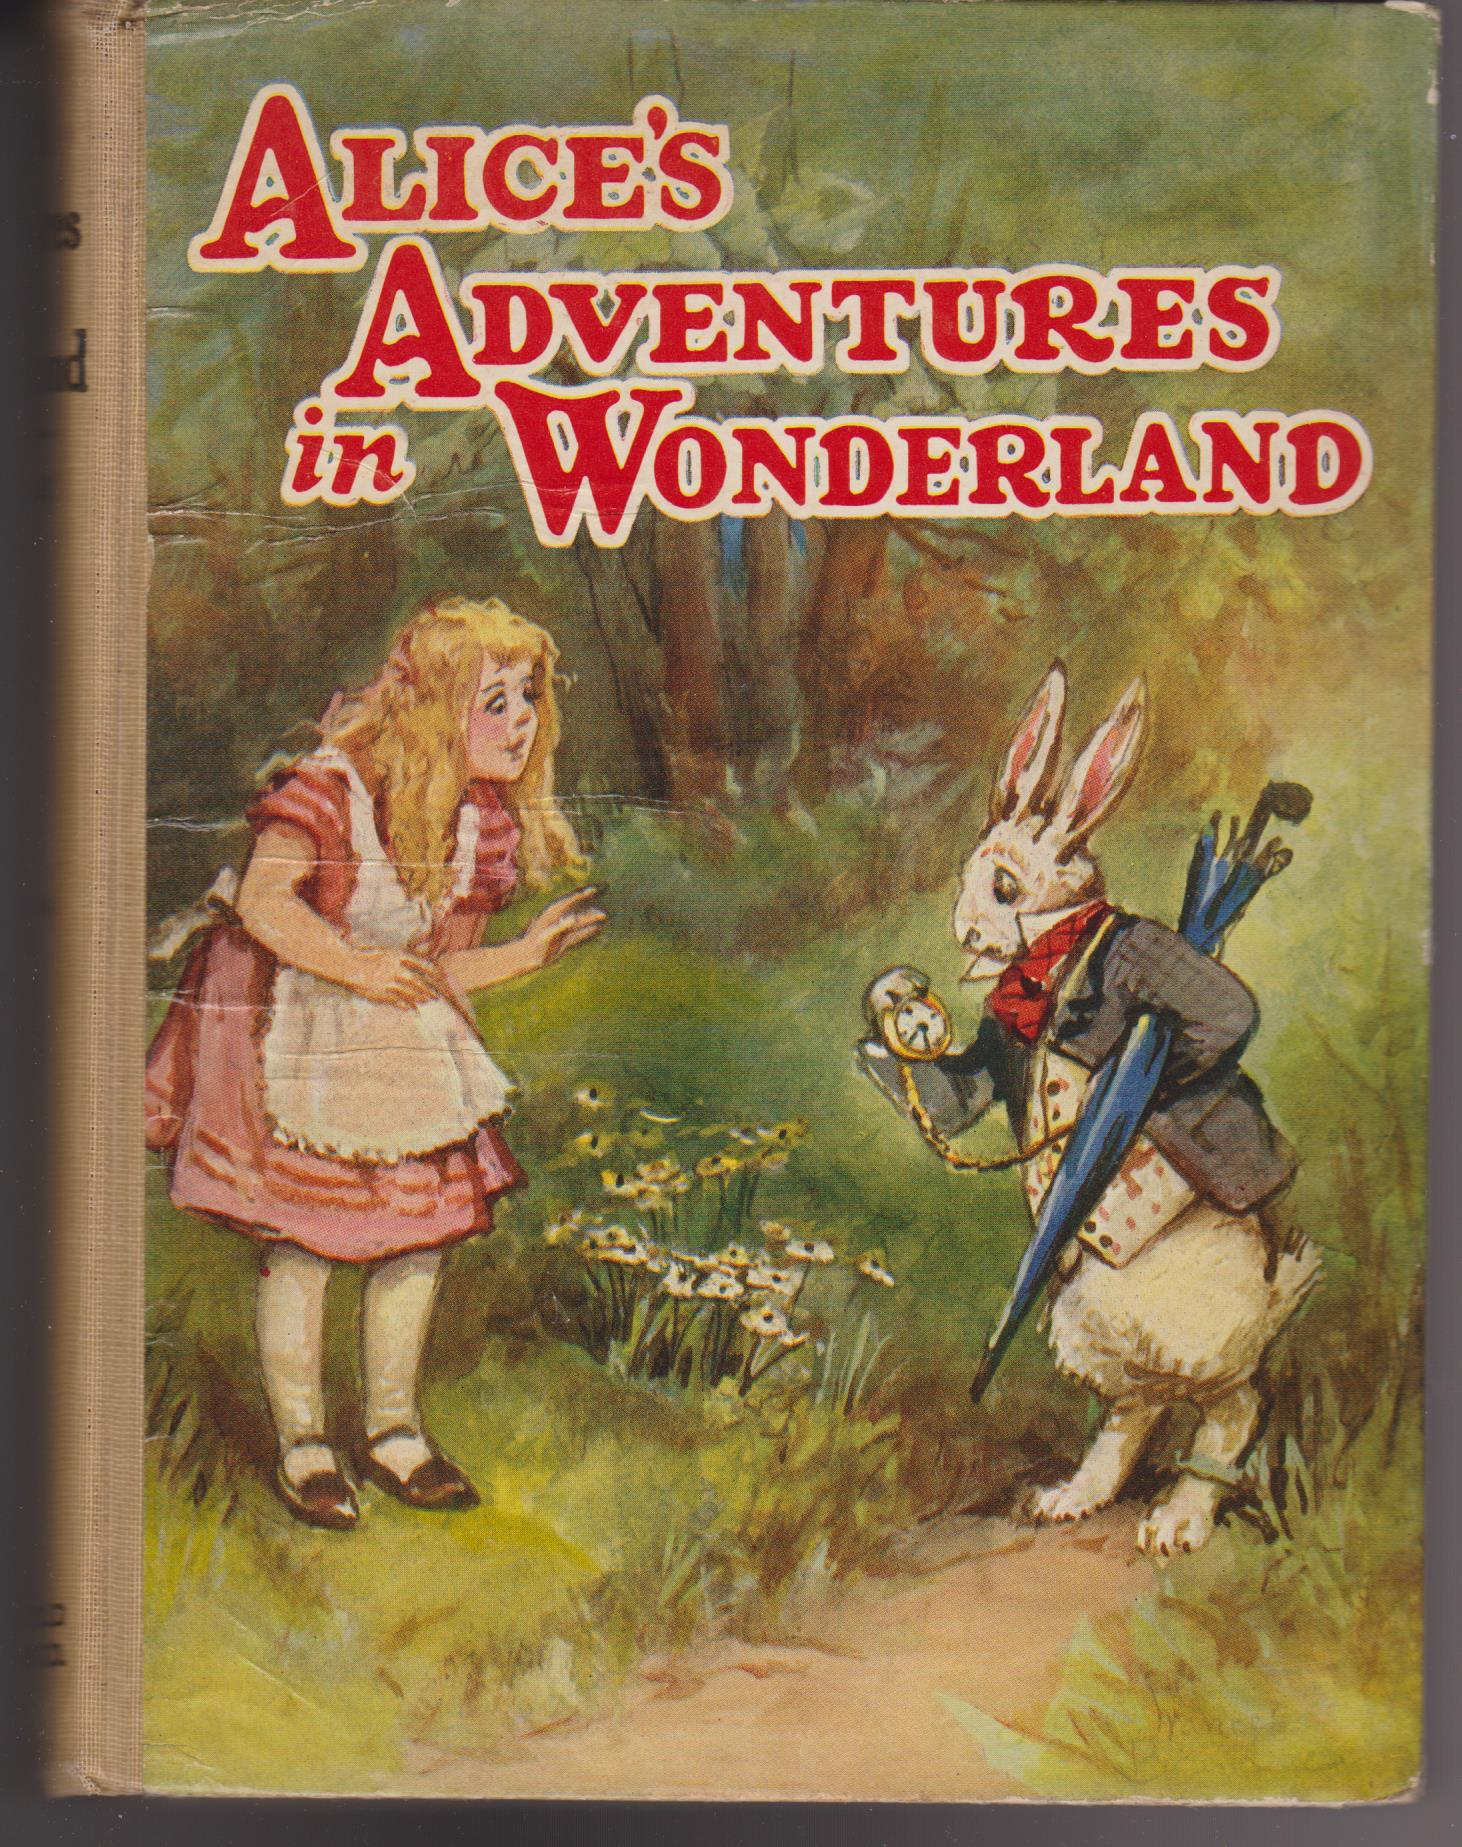 Alice's Adventures in Wonderland Summary